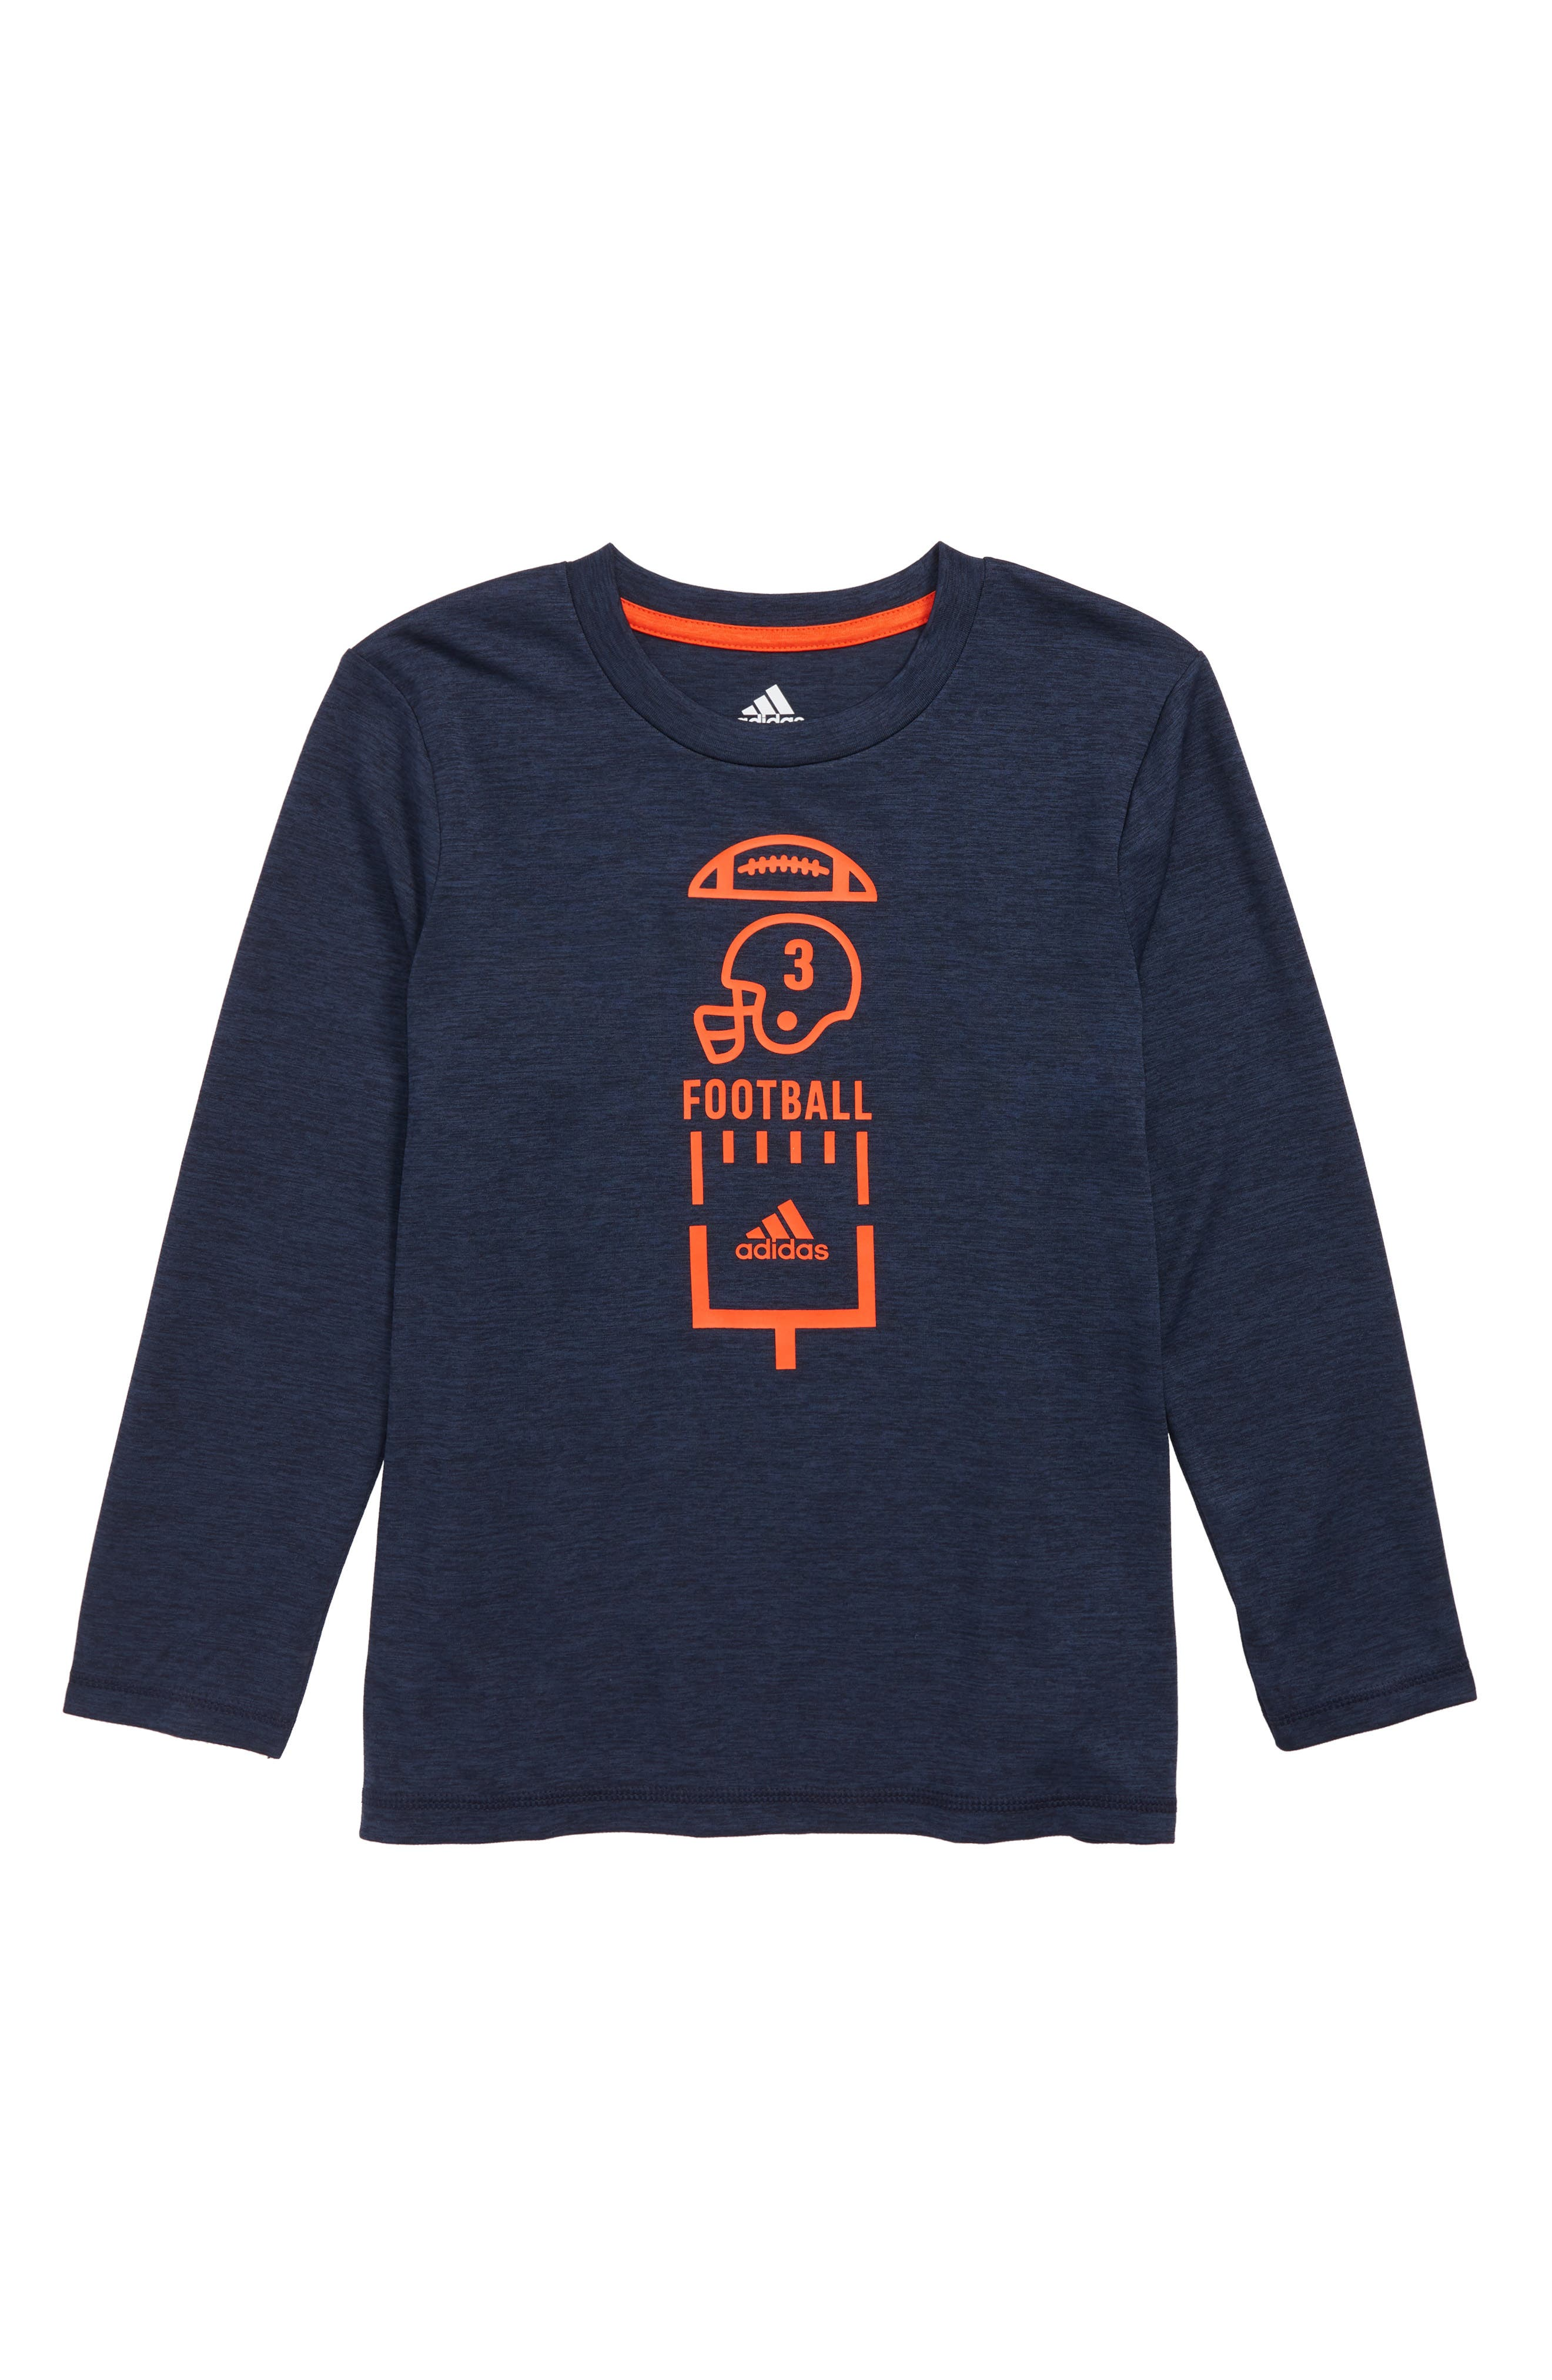 Football Vertical Collage T-Shirt,                         Main,                         color, Navy